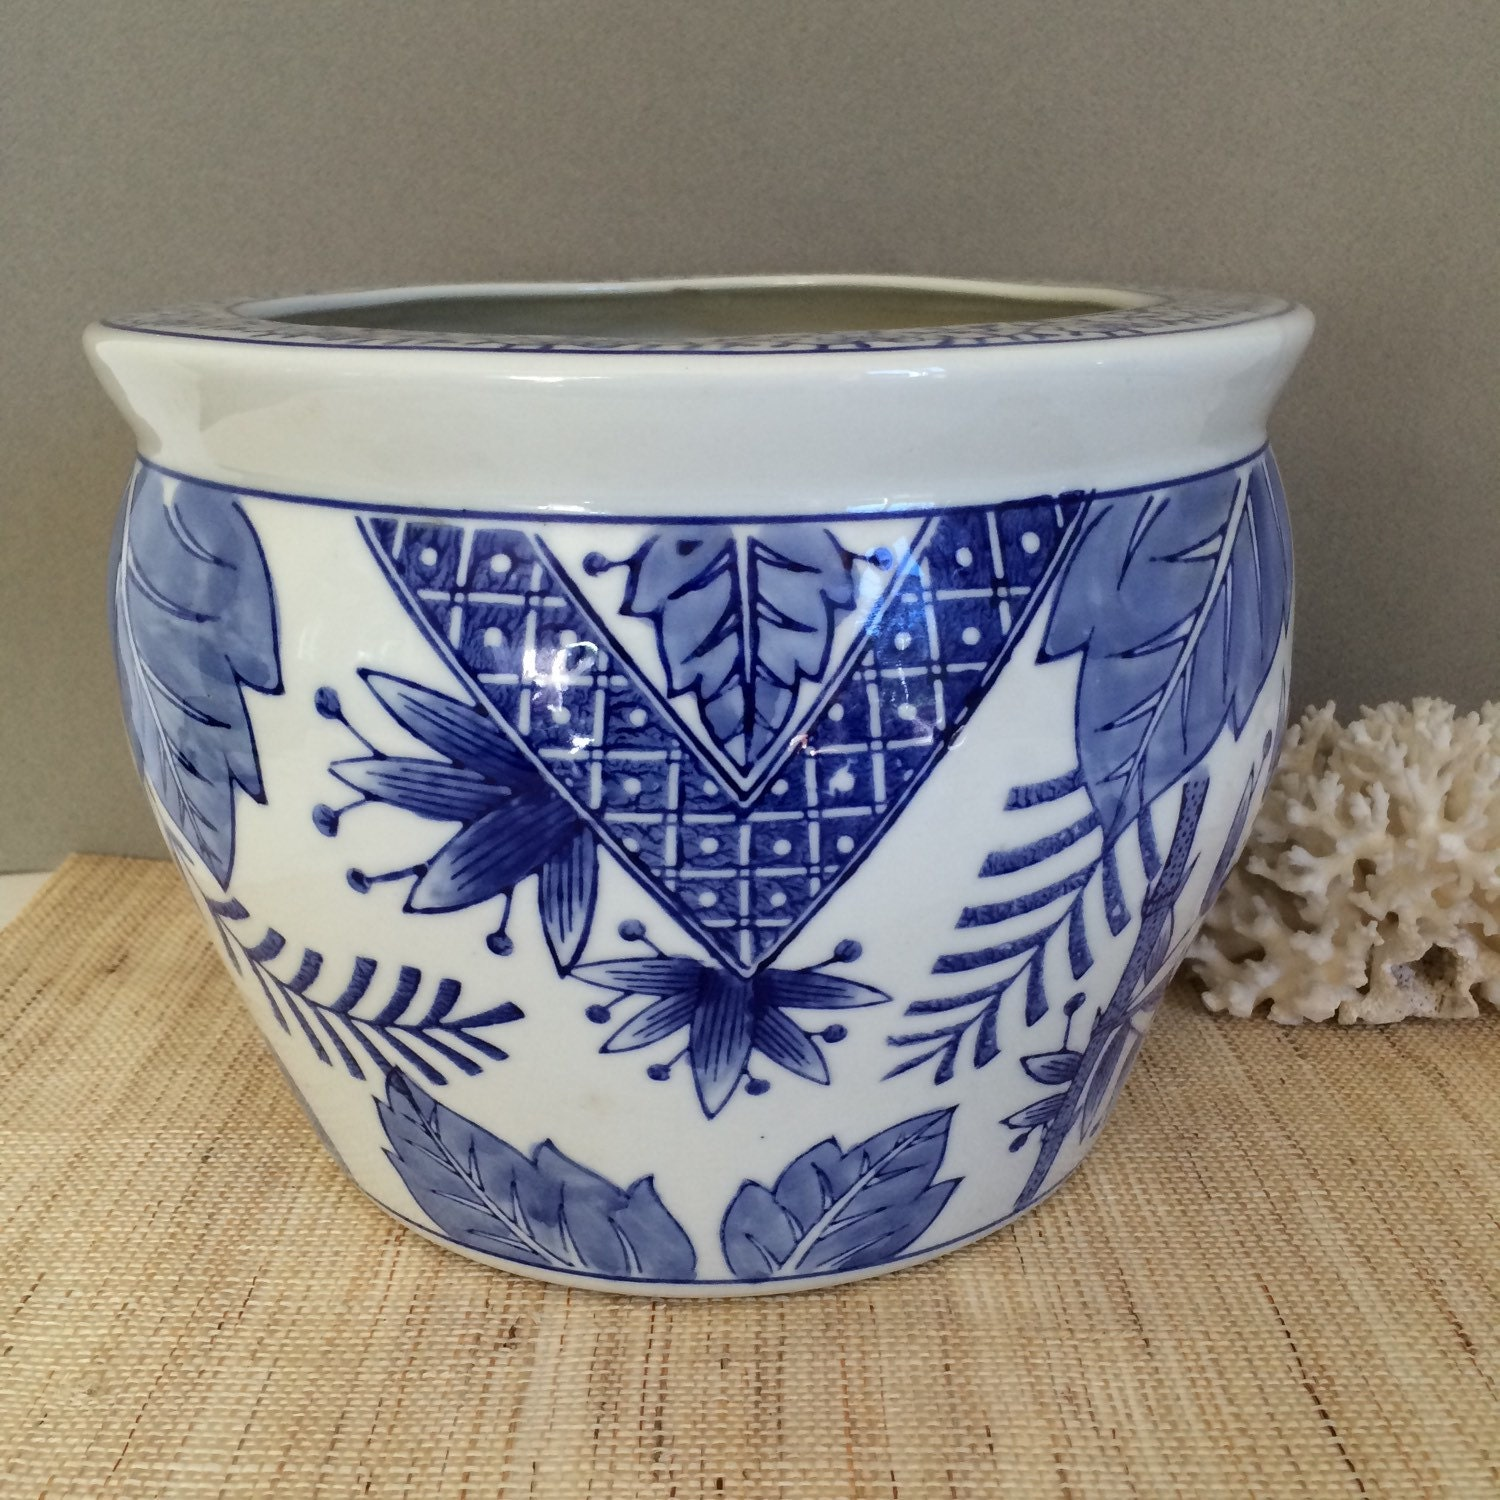 Vintage blue and white planter chinese fish bowl vintage for Chinese fish bowl planter